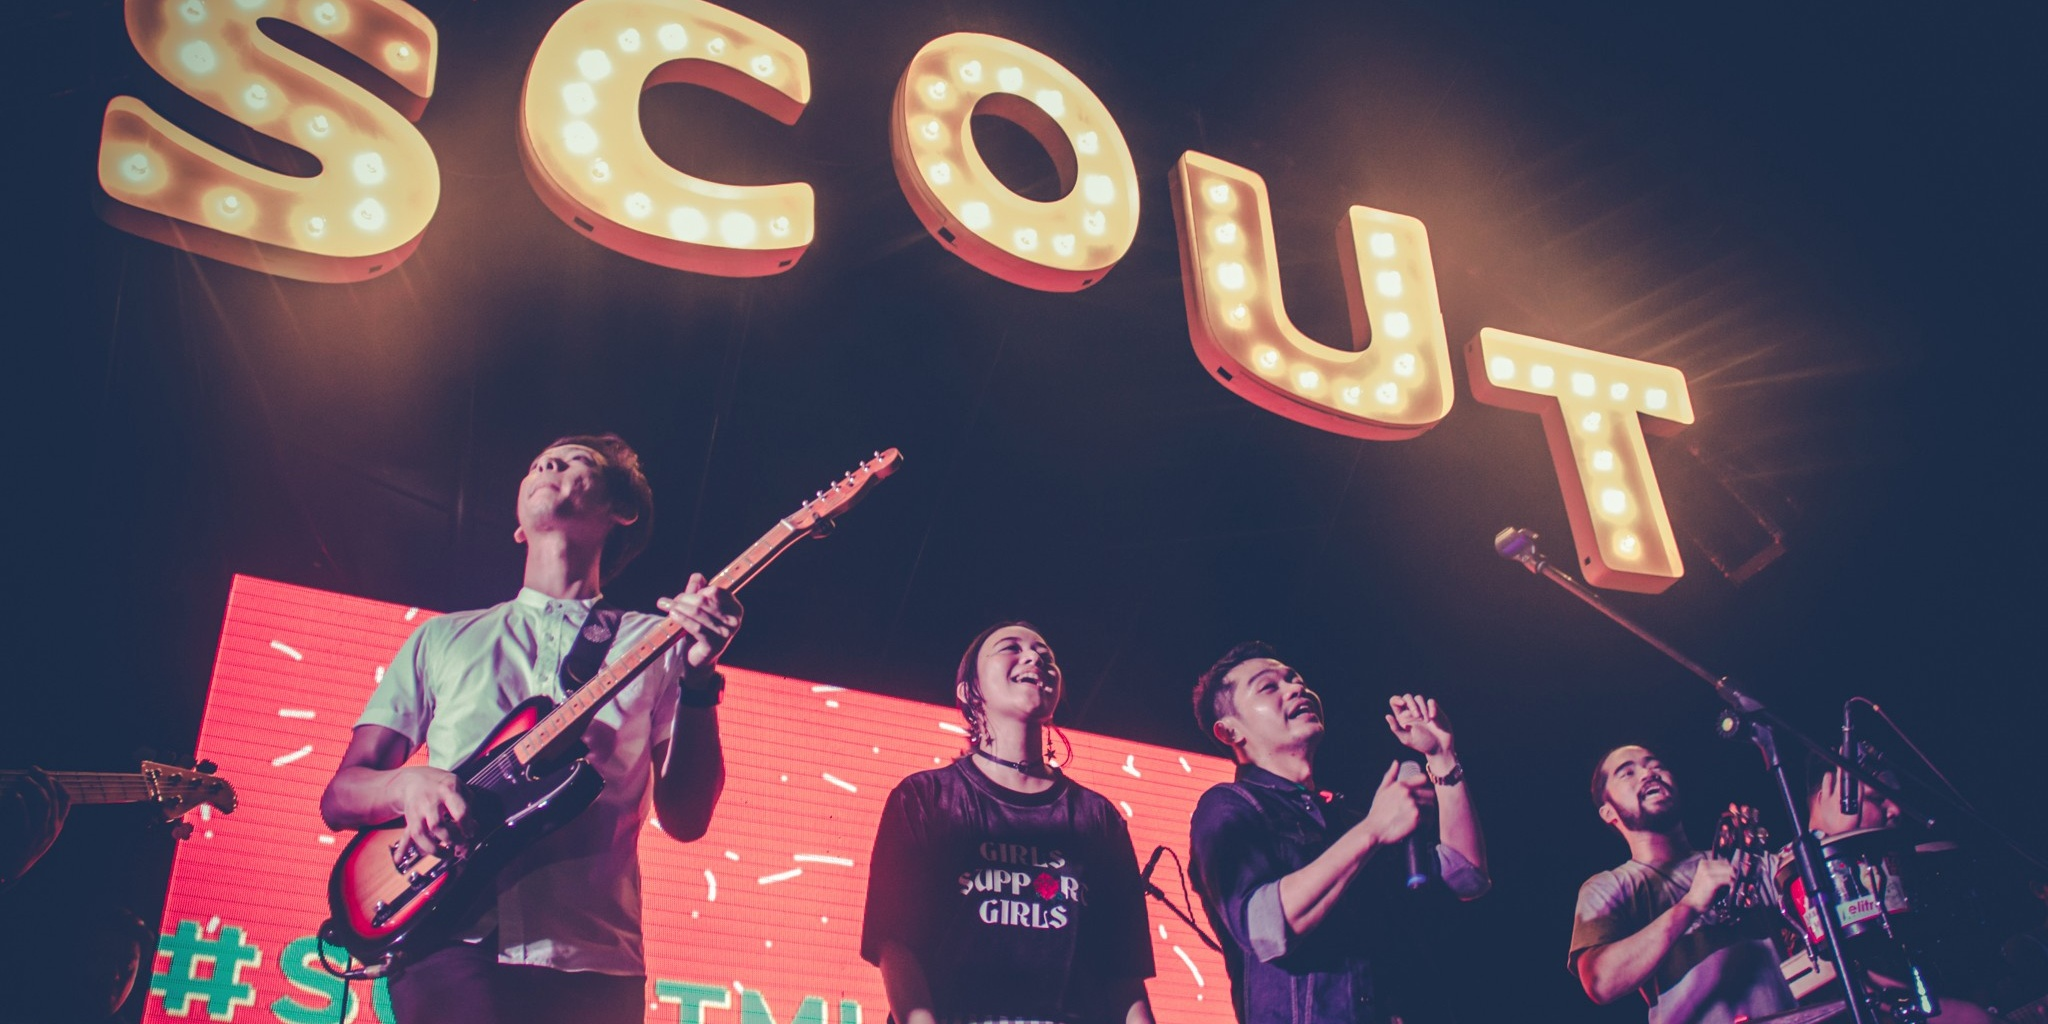 Scout's 3rd birthday bash is a look back at summer – photo gallery